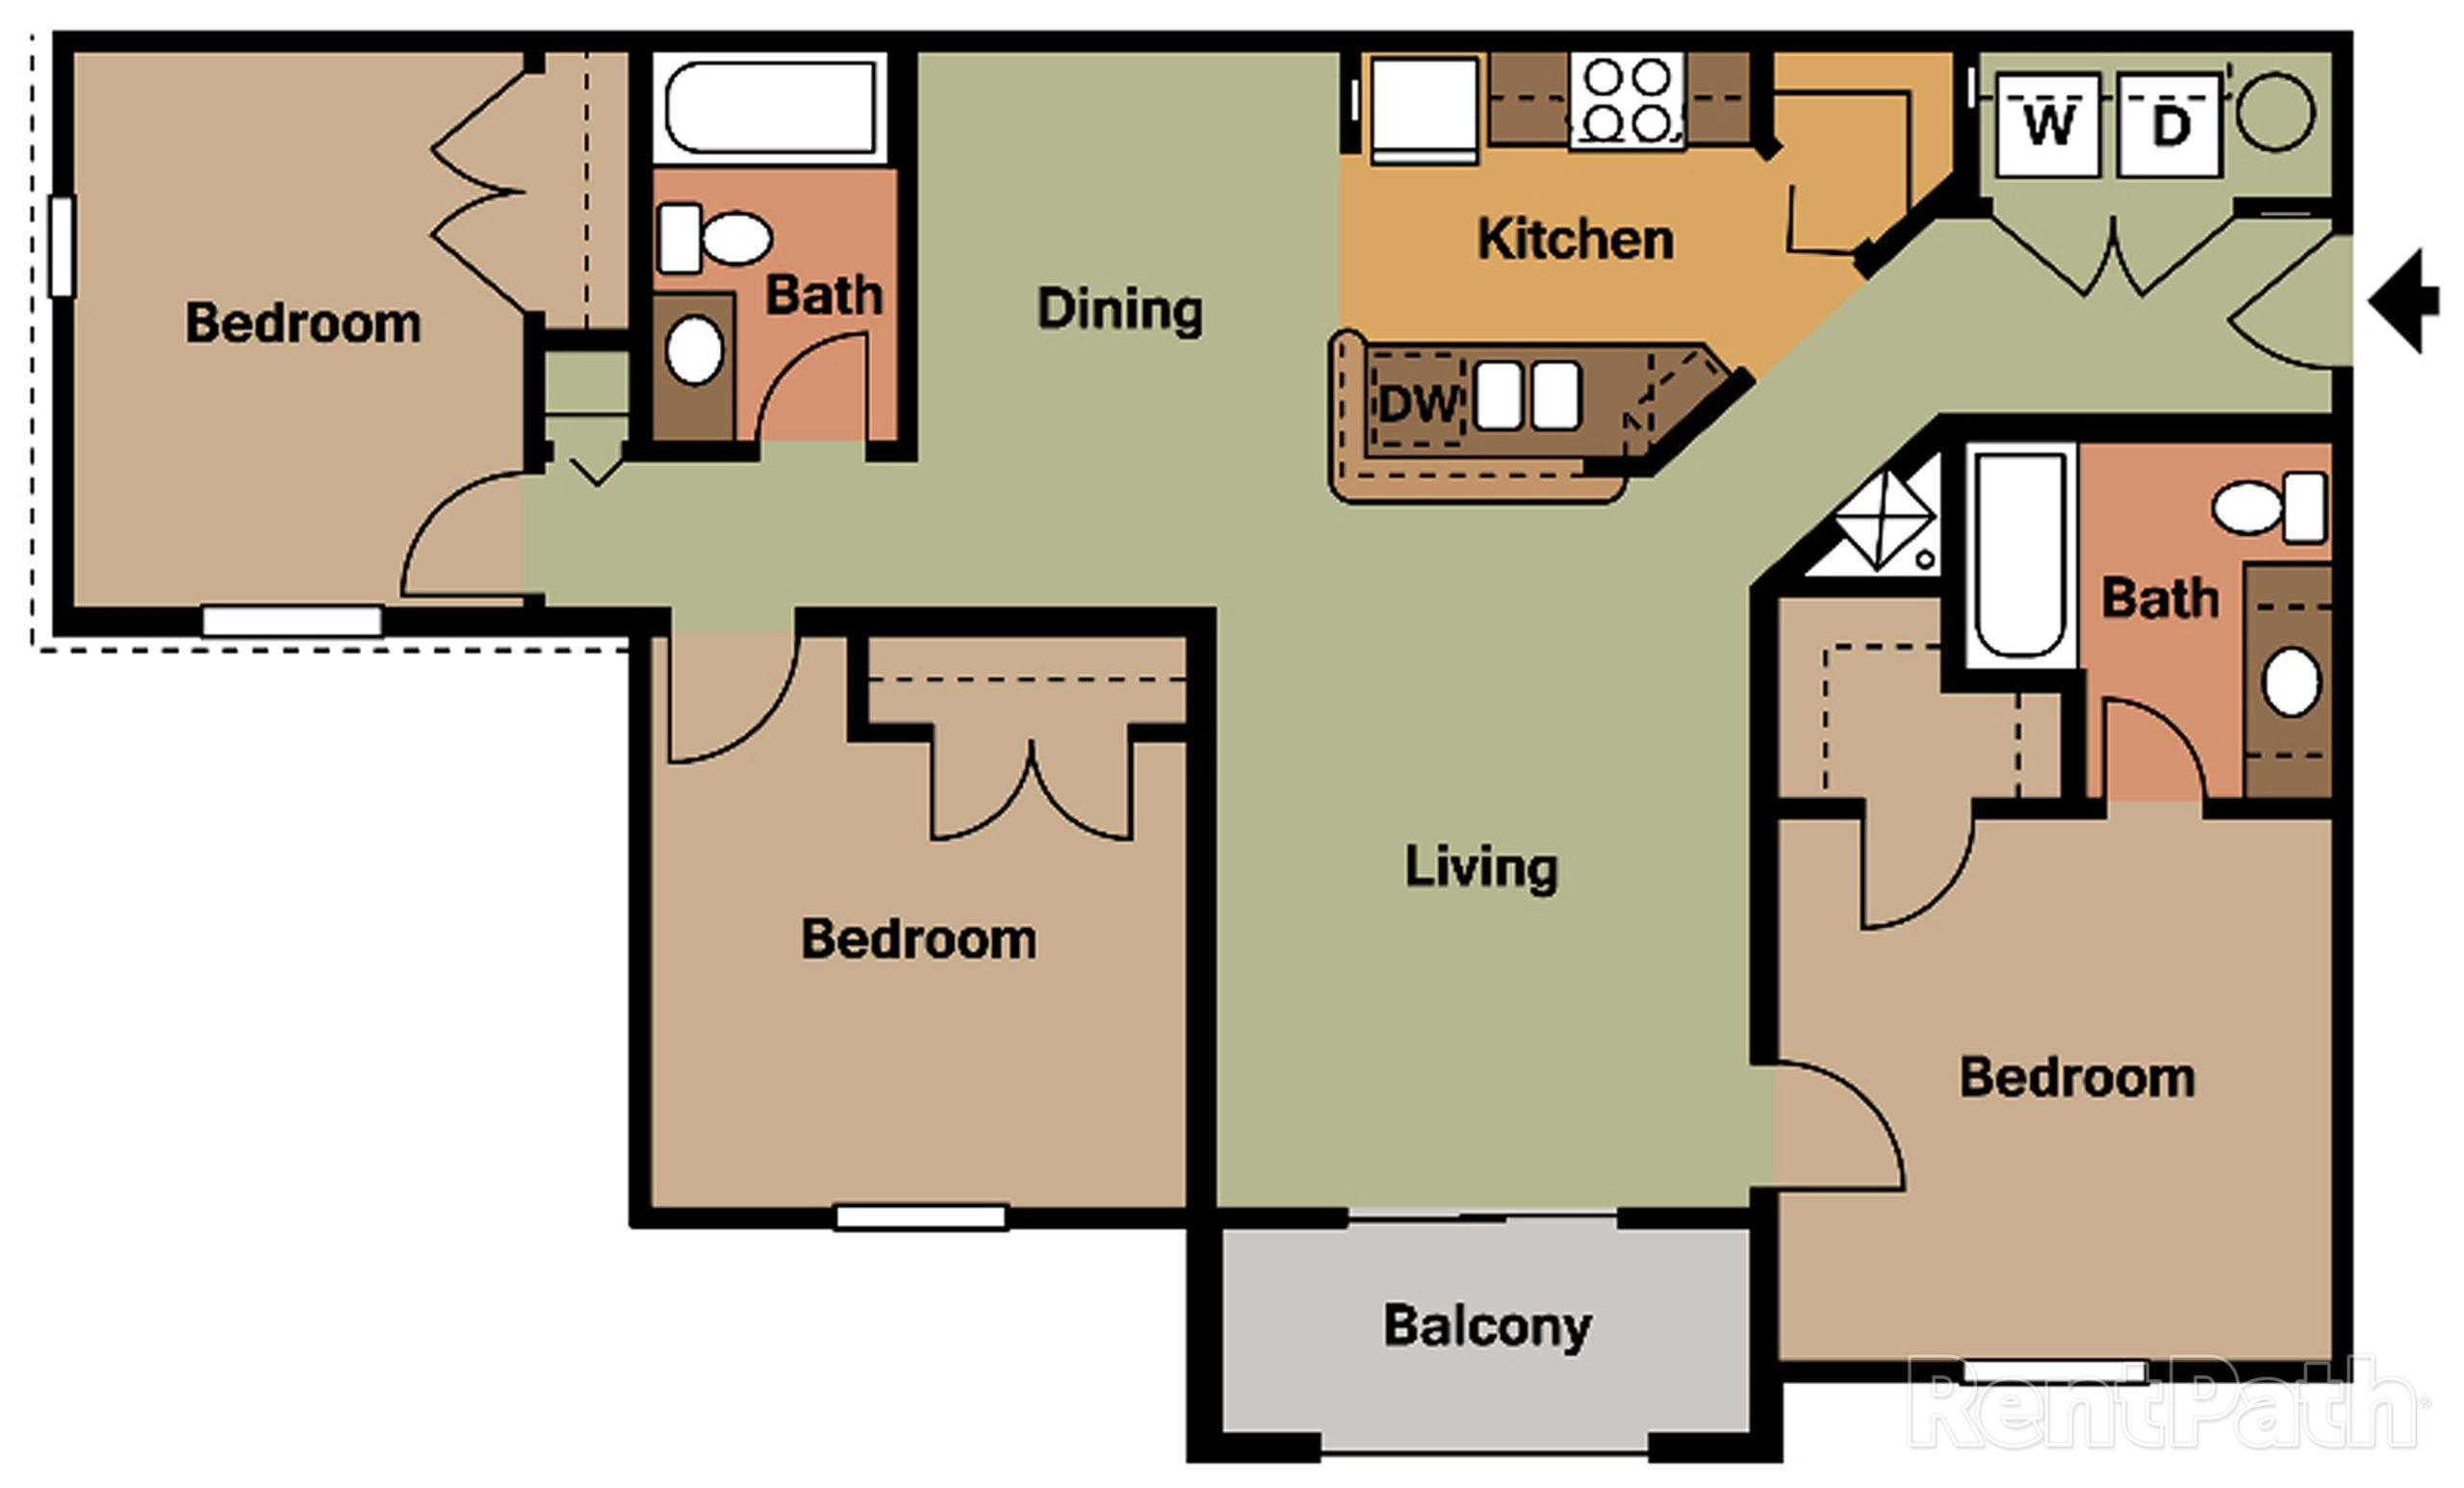 st-marys-floor-plan